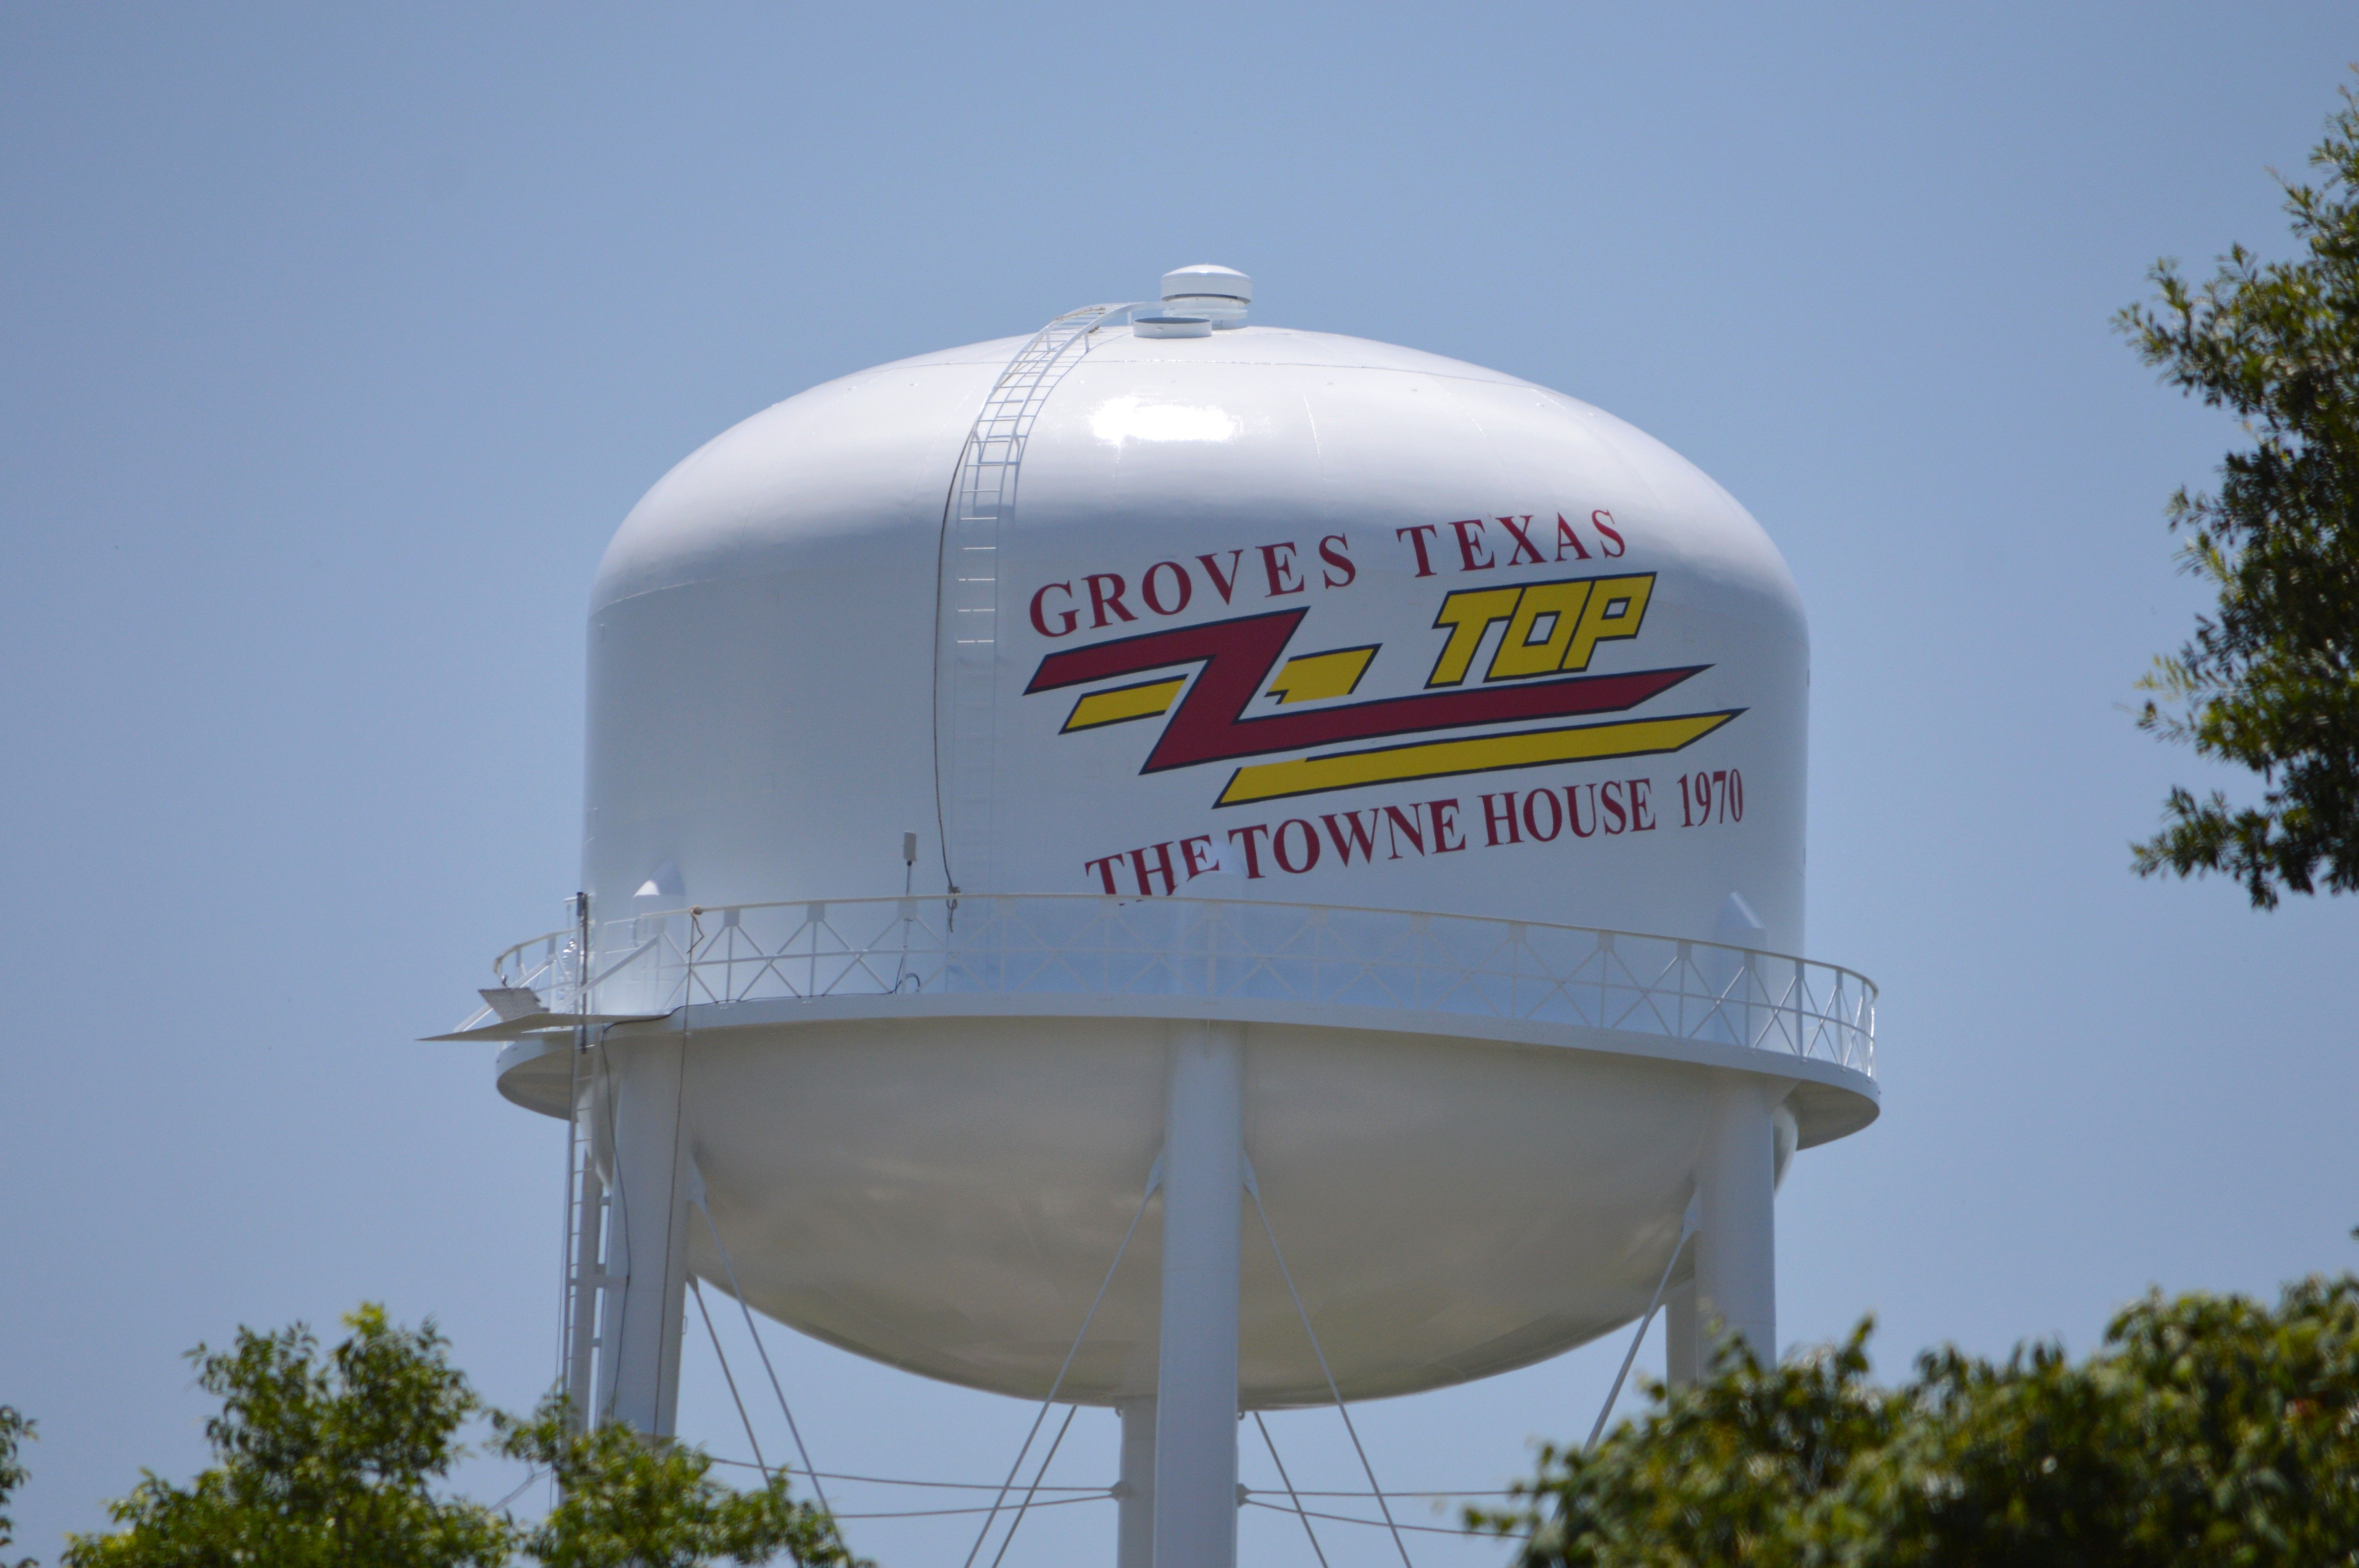 Where Is Zz Top Water Tower Visitportarthurtx And Visit Our Neighbor Groves Texas Mary Meaux Photo For Port Arth Port Arthur Water Tower Port Arthur Texas